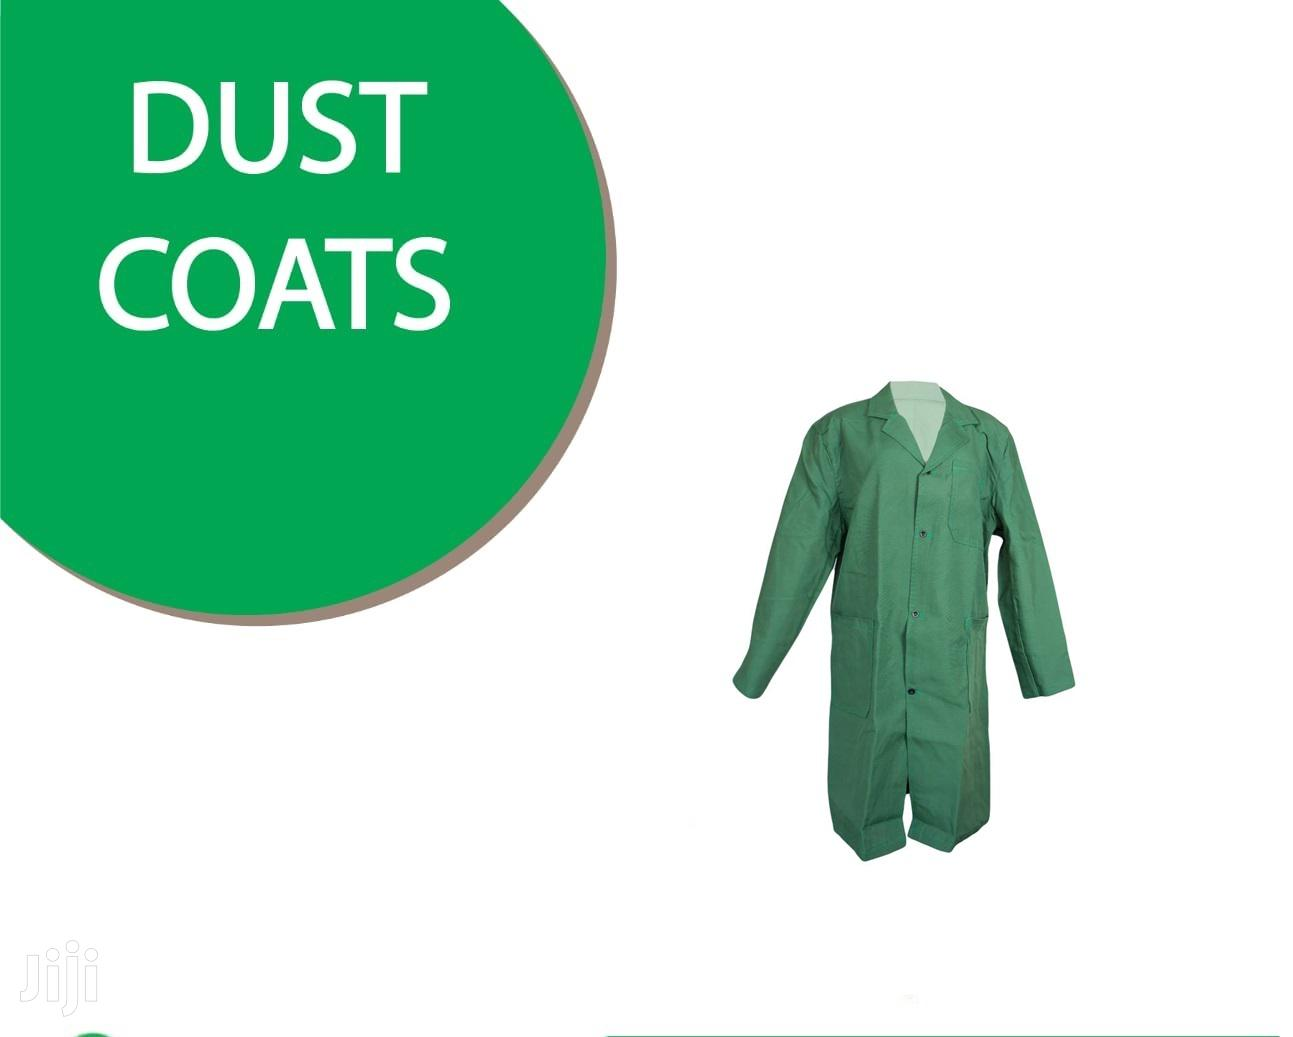 Dust Coats - We Also Do Dust Coat Branding